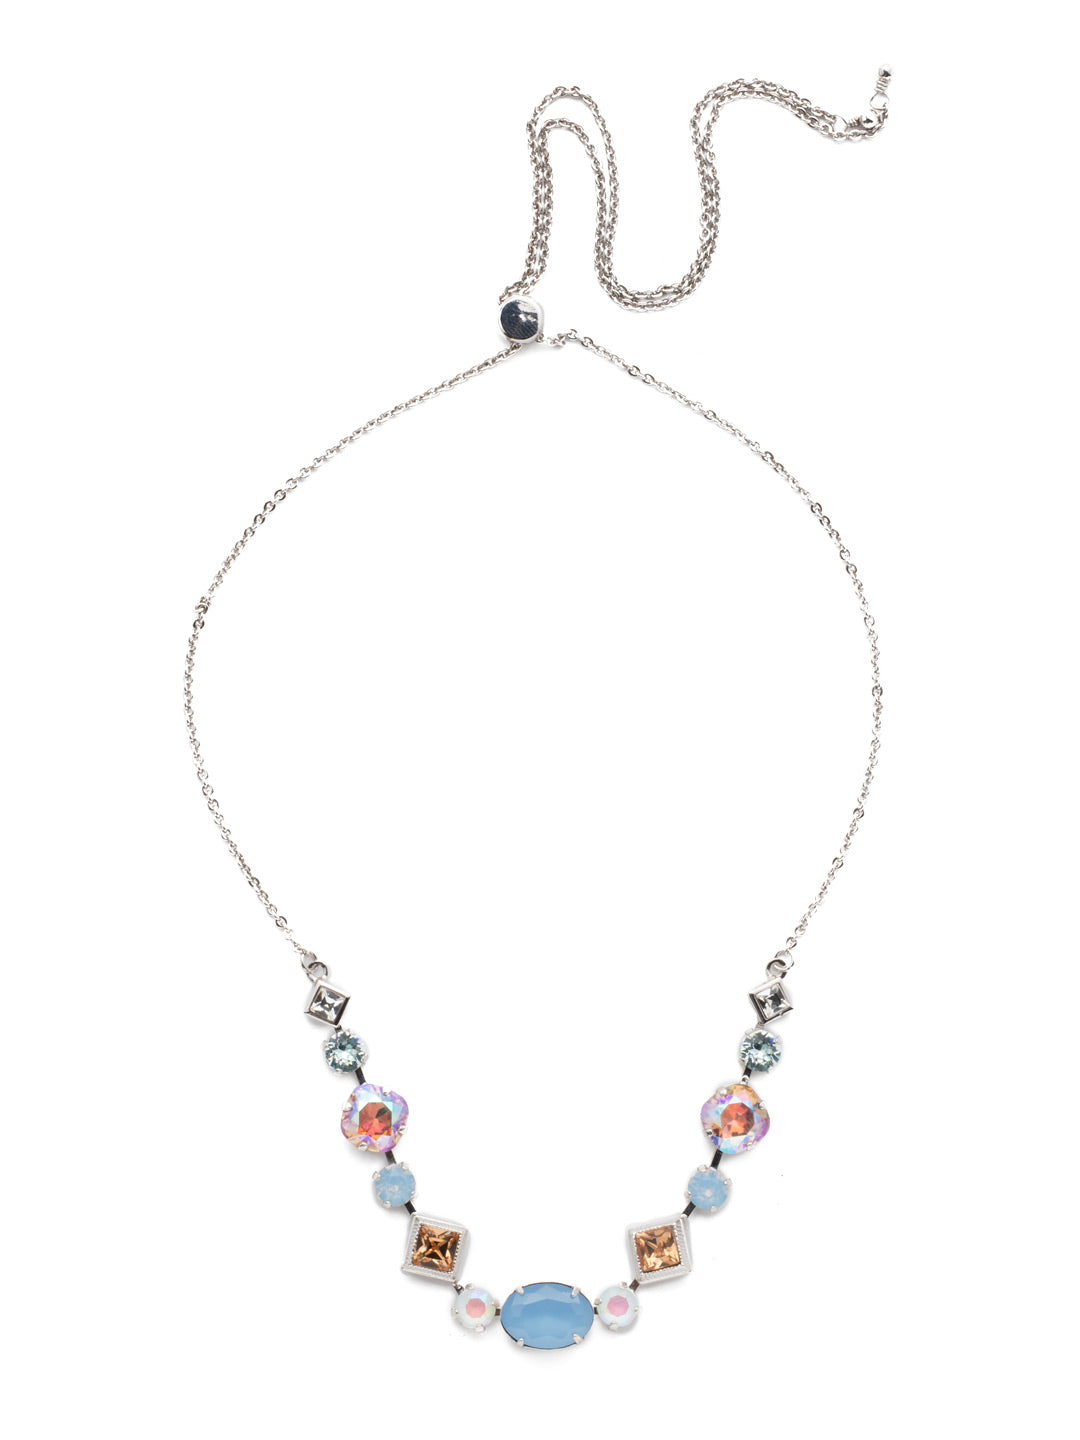 Cordelia Tennis Necklace - NEK29RHNTB